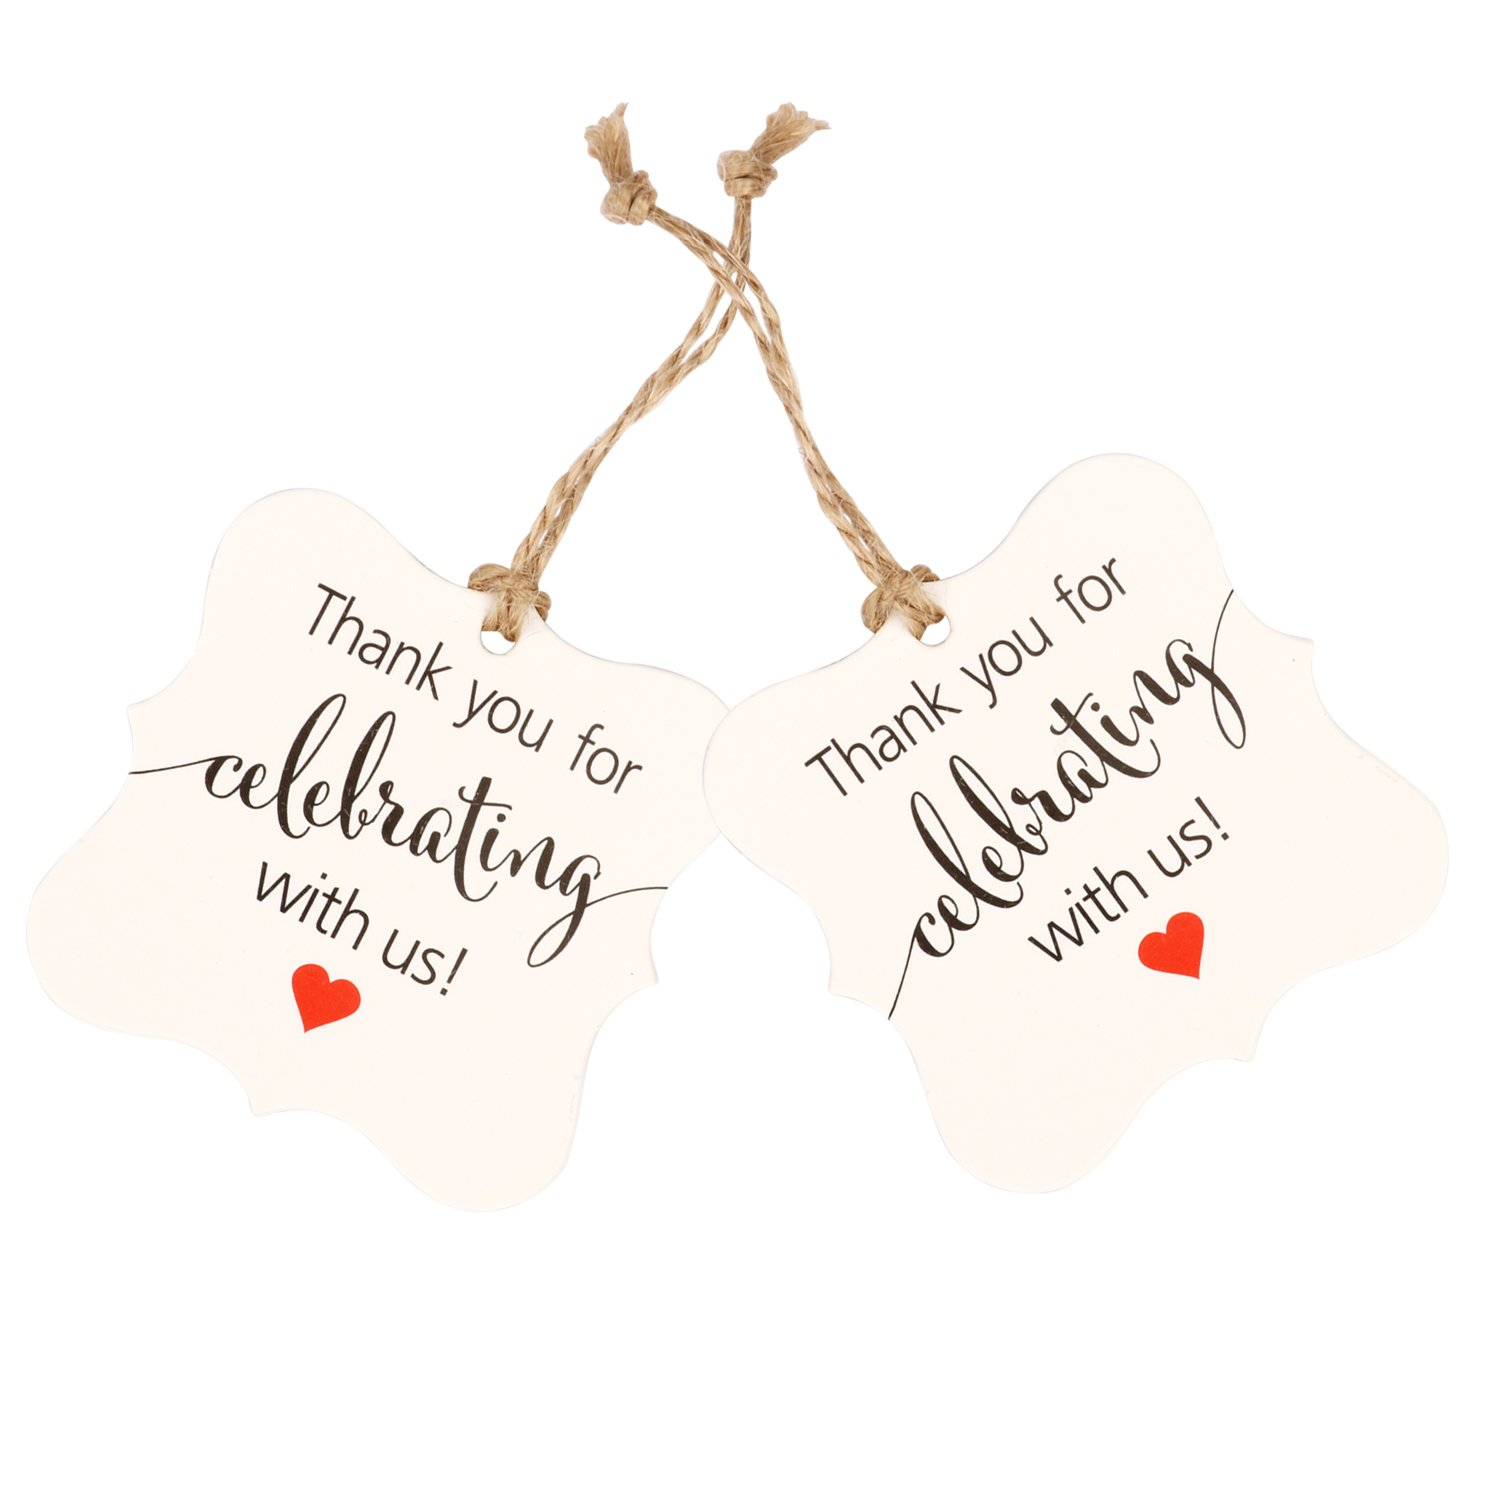 Aprince Paper Favor Gift Tags 100 PCS Thank You Tags Wedding Favor Gift Tags Thank You for Celebrating with Us White Square Tags with 20m Natural Jute Twine Perfect for Bridal Baby Shower Anniversary by Aprince (Image #2)